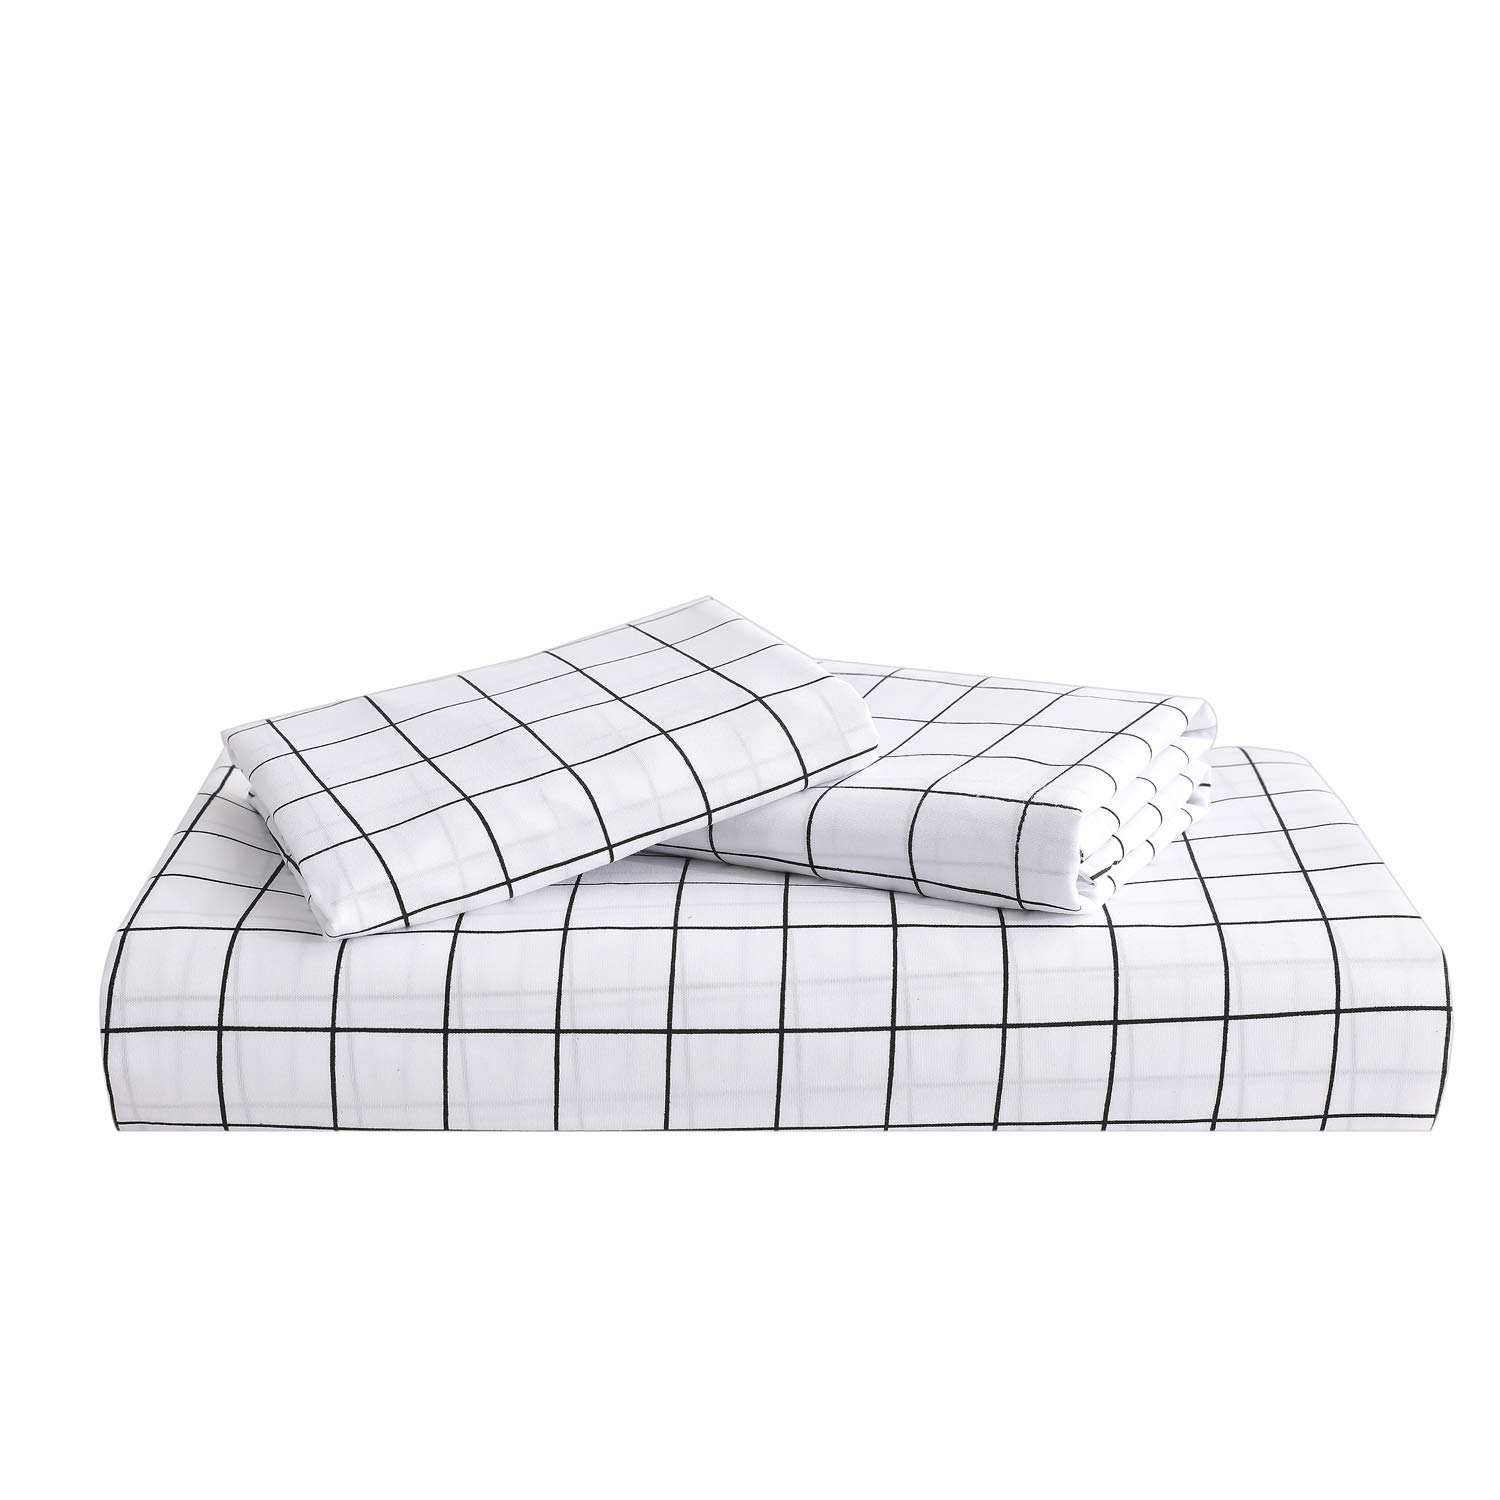 Brushed Microfiber Durable Gray Striped Printed Pattern Reversible DeerHome Bedding Duvet Cover Set King with Zipper Closure Lightweight Soft